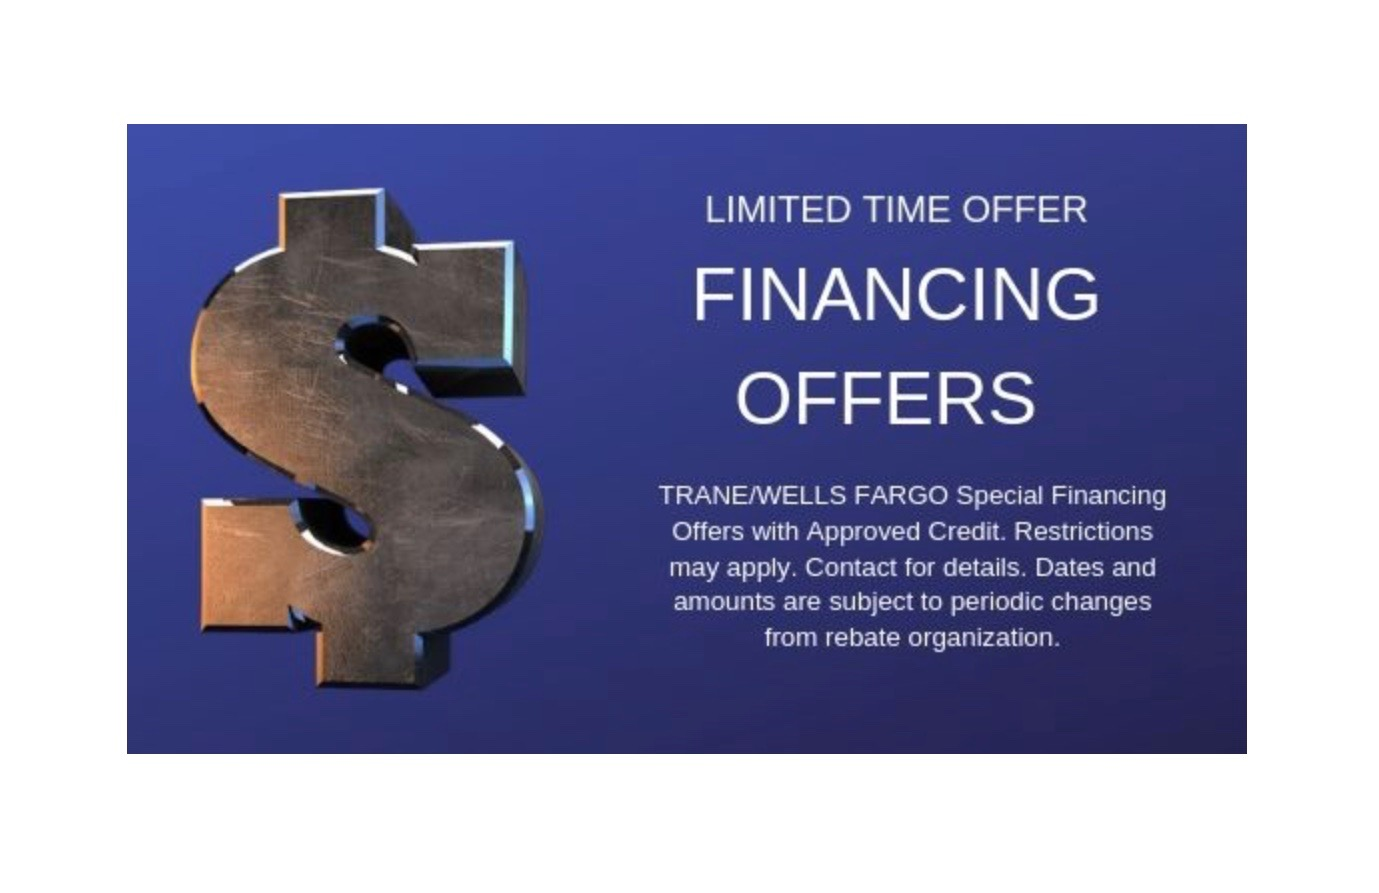 Financing Offer - TRANE/WELLS FARGOSpecial Financing Offers with Approved Credit. Restrictions may apply. Contact for details. Dates and amounts are subject to periodic changes from rebate organization.